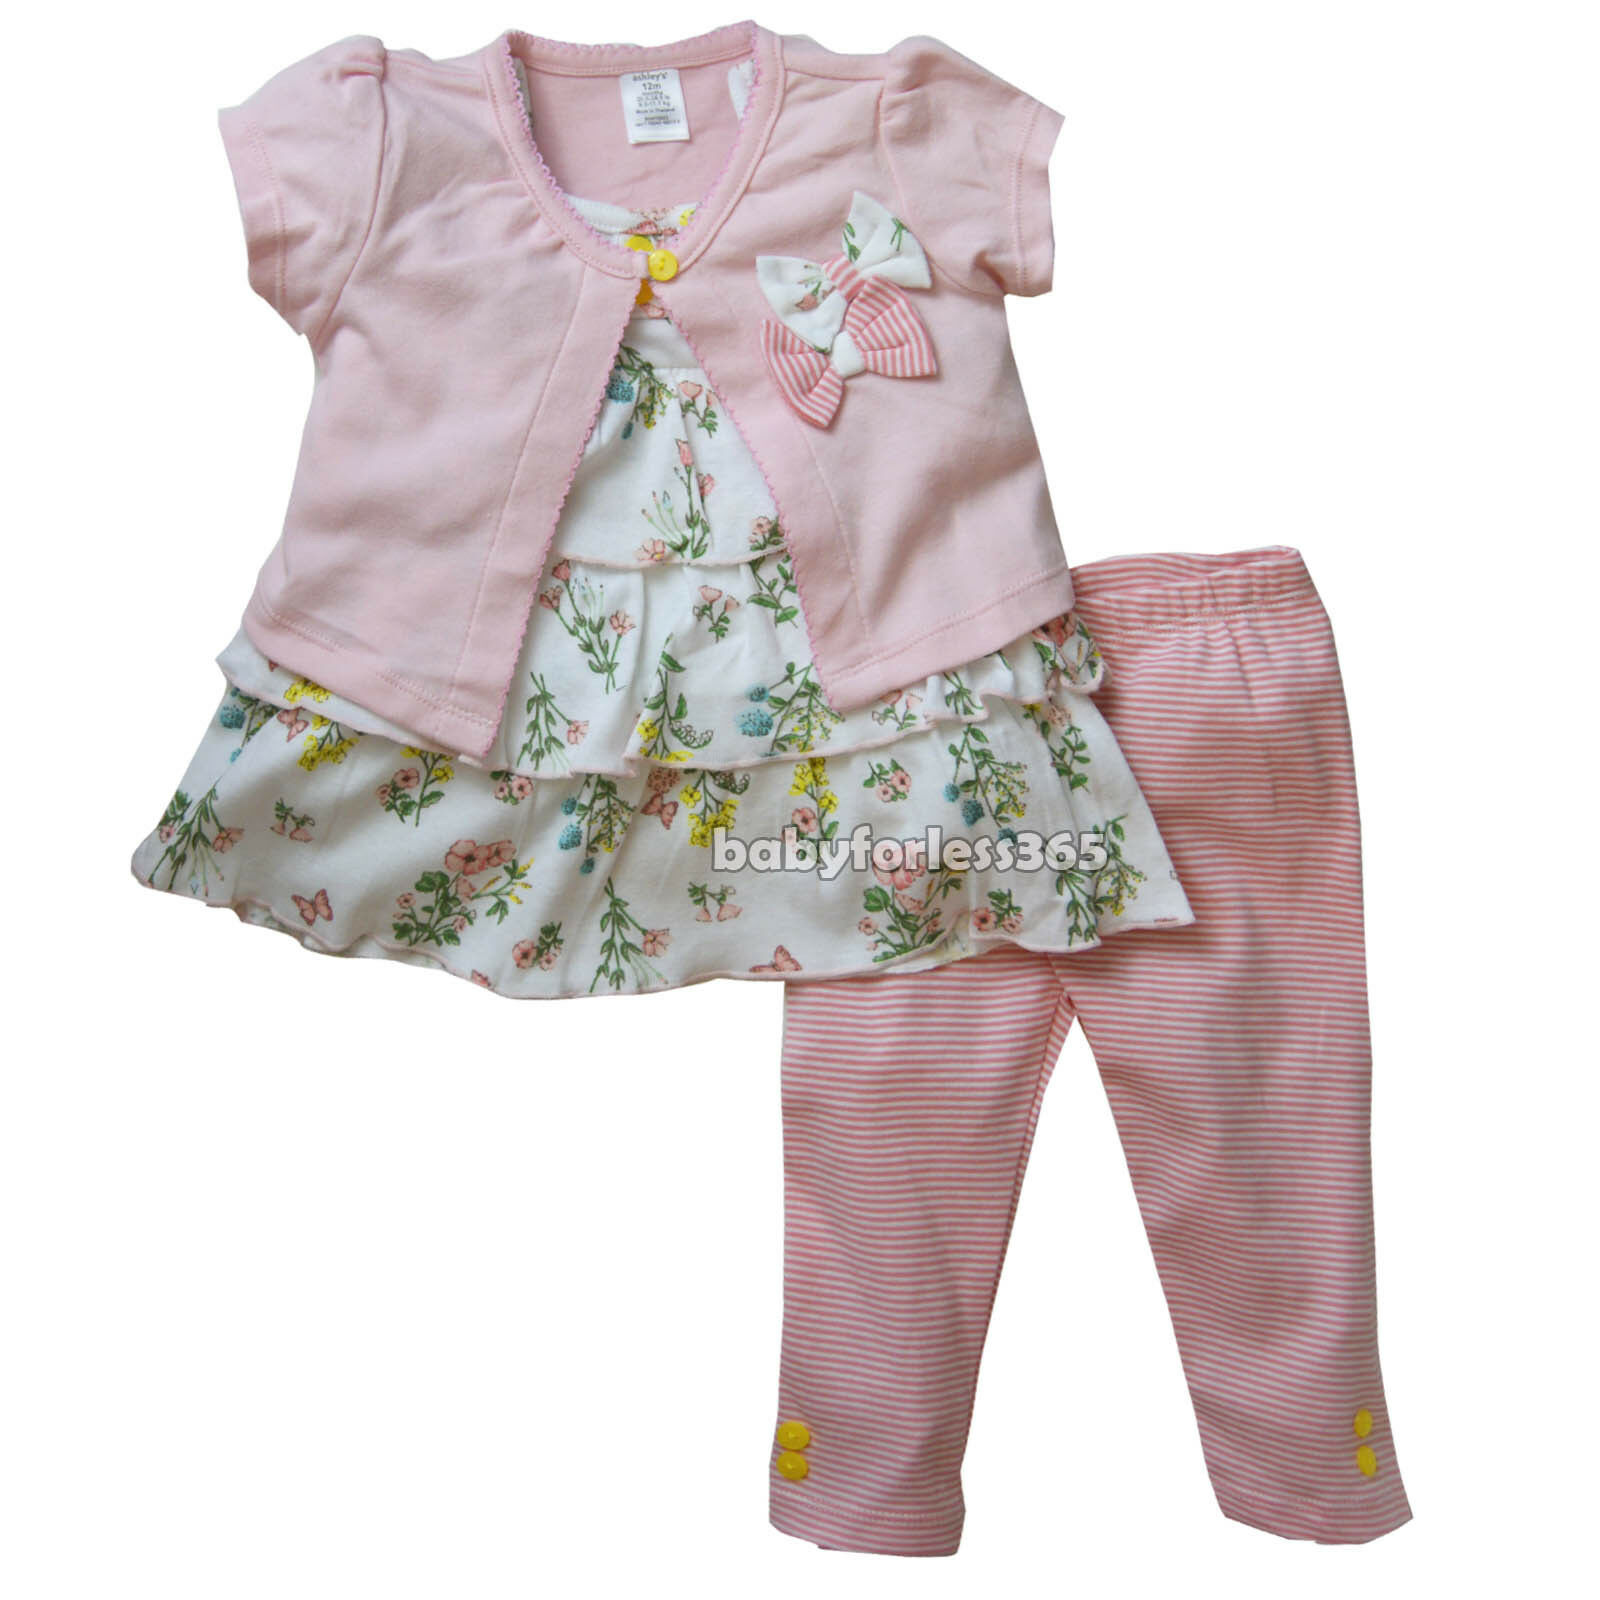 8d0eb40cc494c Details about New Ashley's Baby Girls 3 pieces Cardigan Shirt Legging Size  12 18 24 months